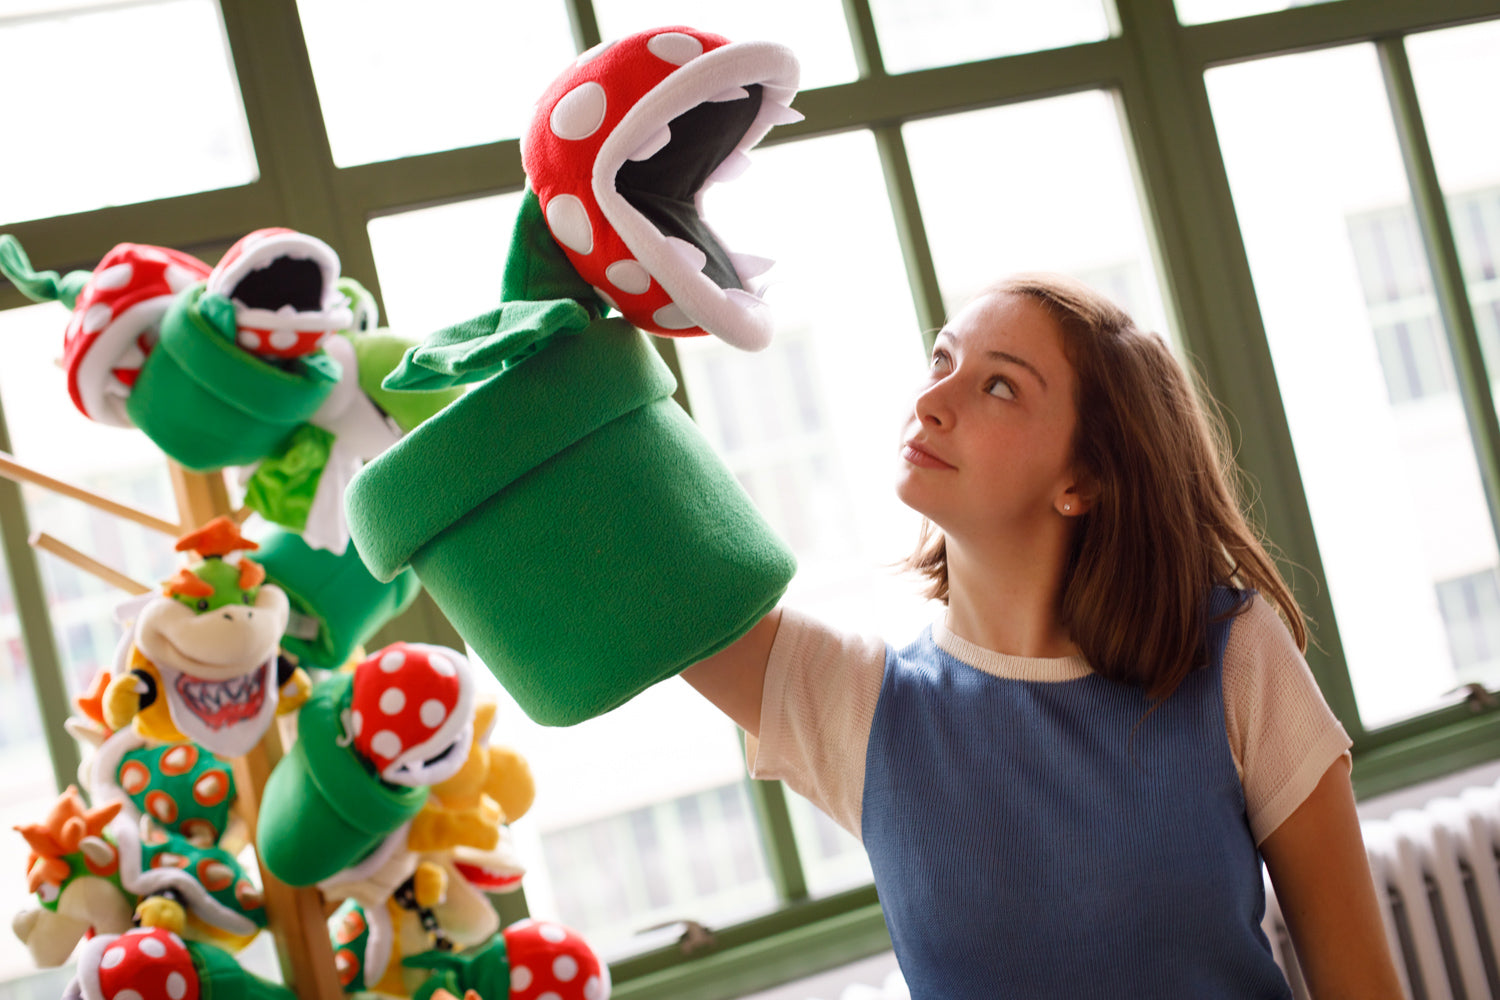 Official Piranha Plant puppet by Uncute